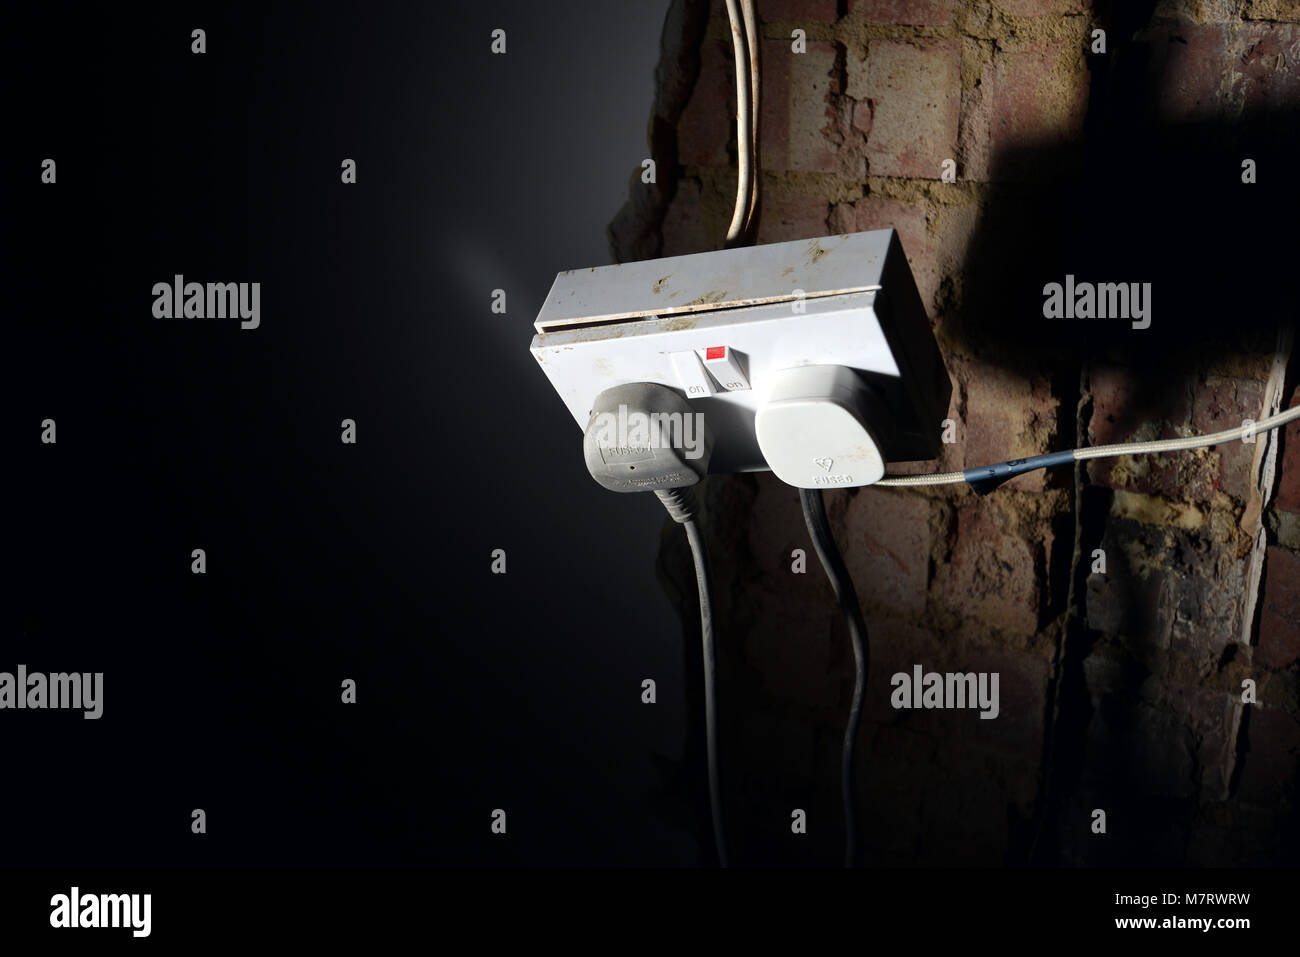 Exposed Wires Stock Photos Images Alamy Wiring Cooker Socket Uk Dangerous On A Electricity Image